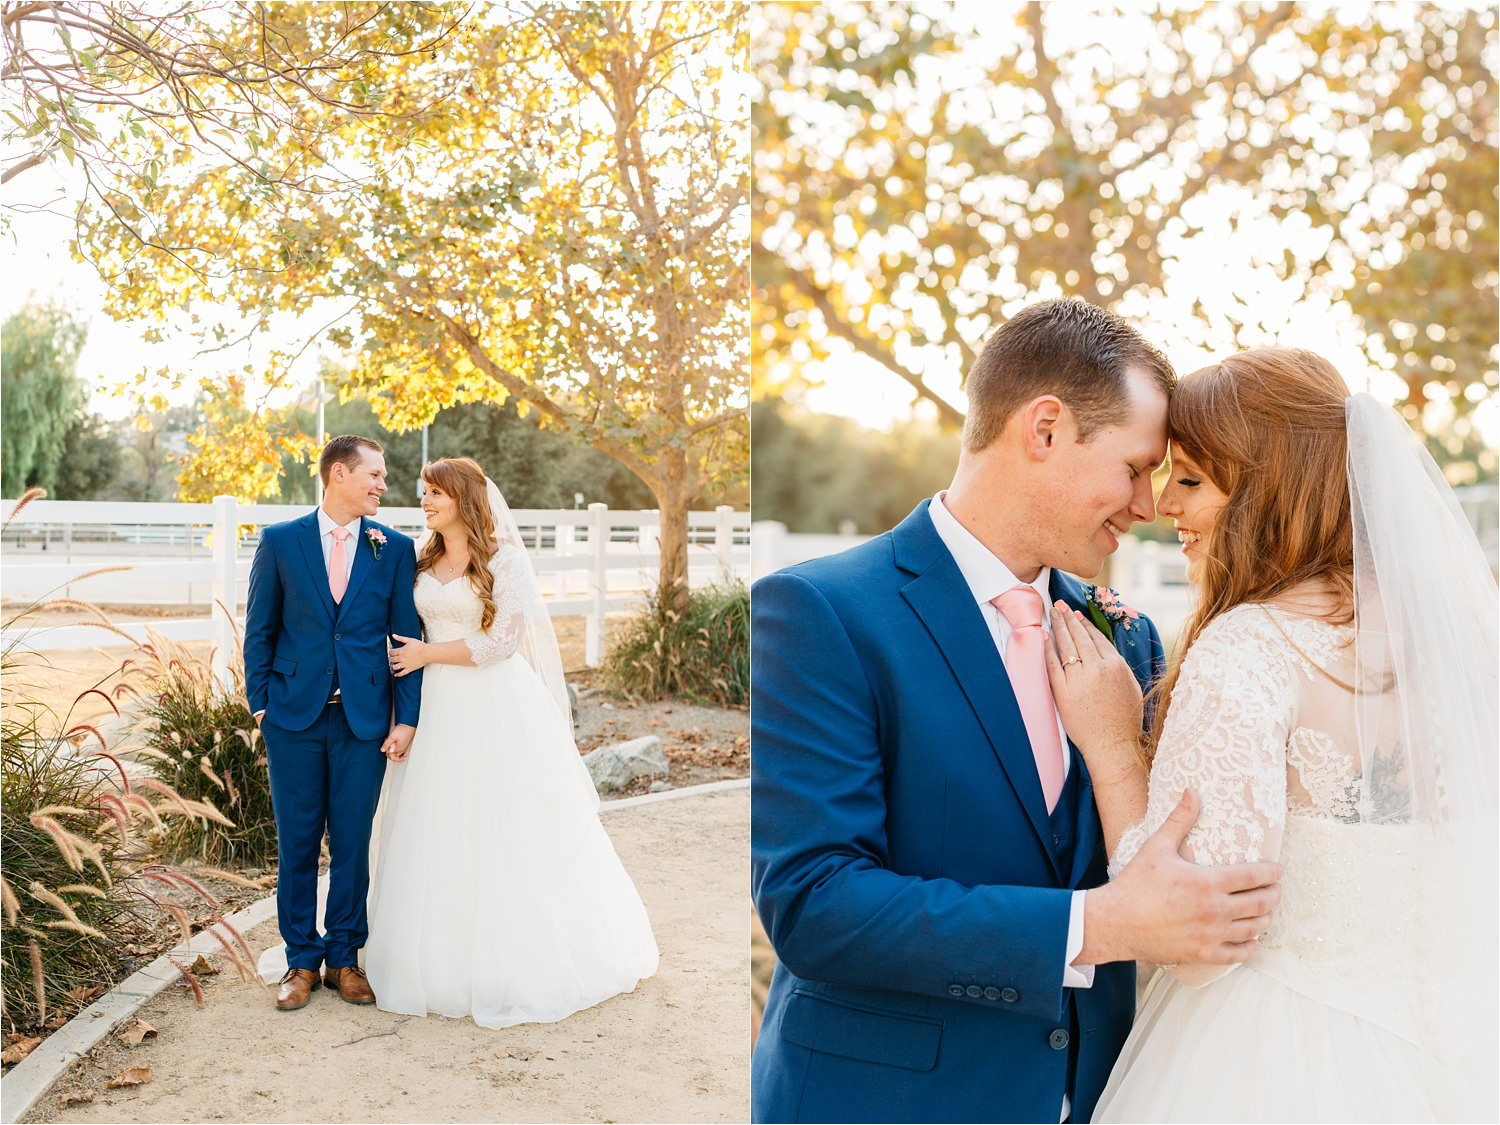 Fall Wedding Inspiration in California - Chino Hills, CA - https://brittneyhannonphotography.com